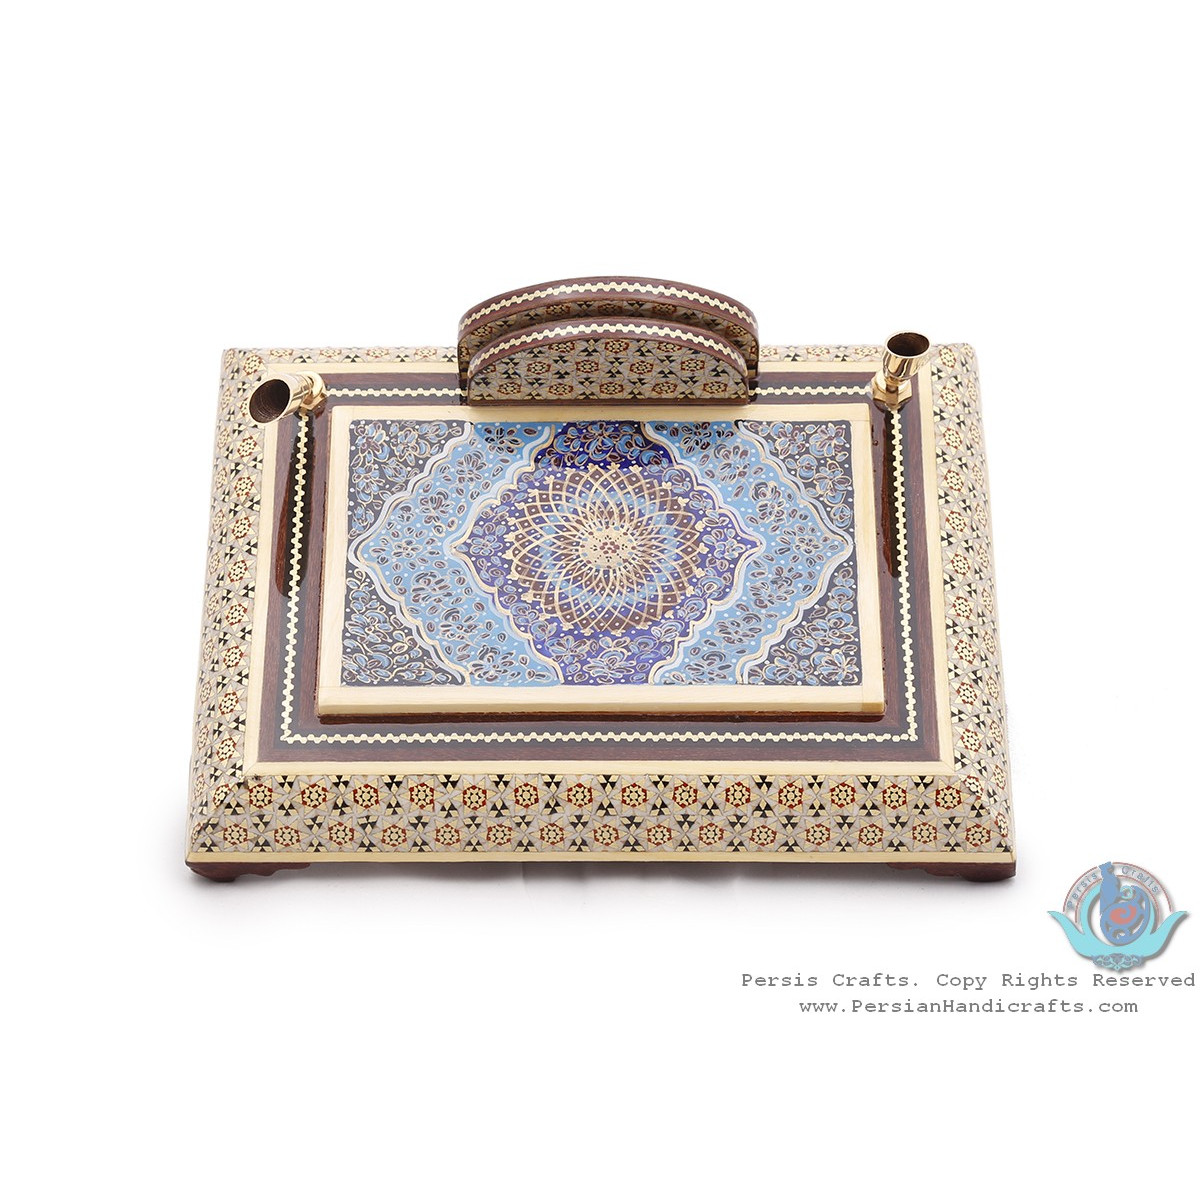 Privileged Khatam Marquetry Pen Holder with Tazhib Miniature - HKH3918-Persian Handicrafts